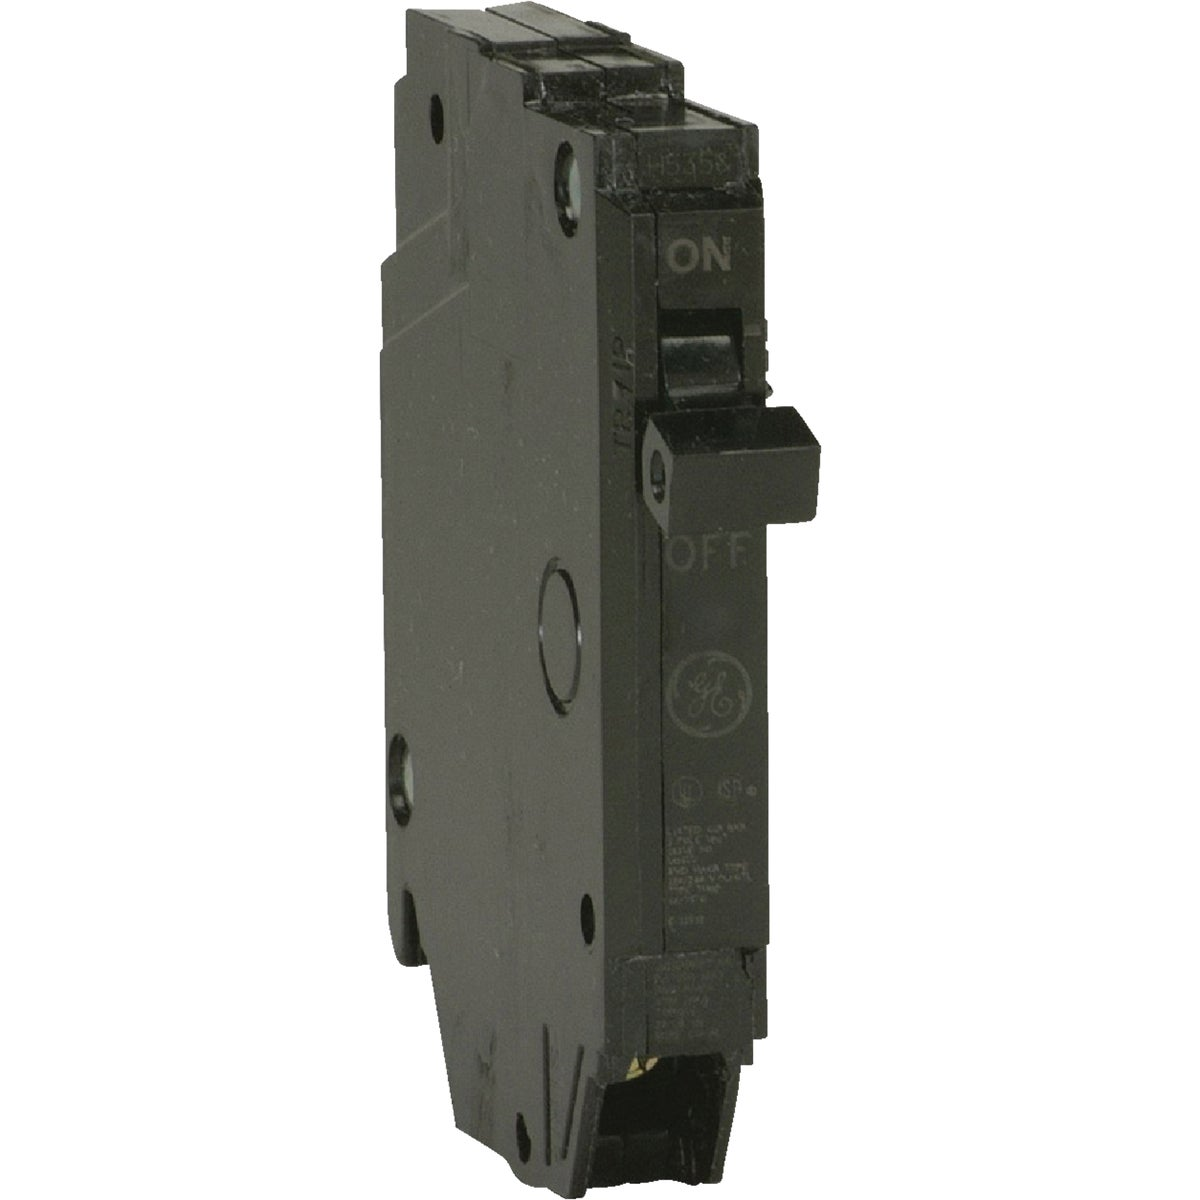 30A SP CIRCUIT BREAKER